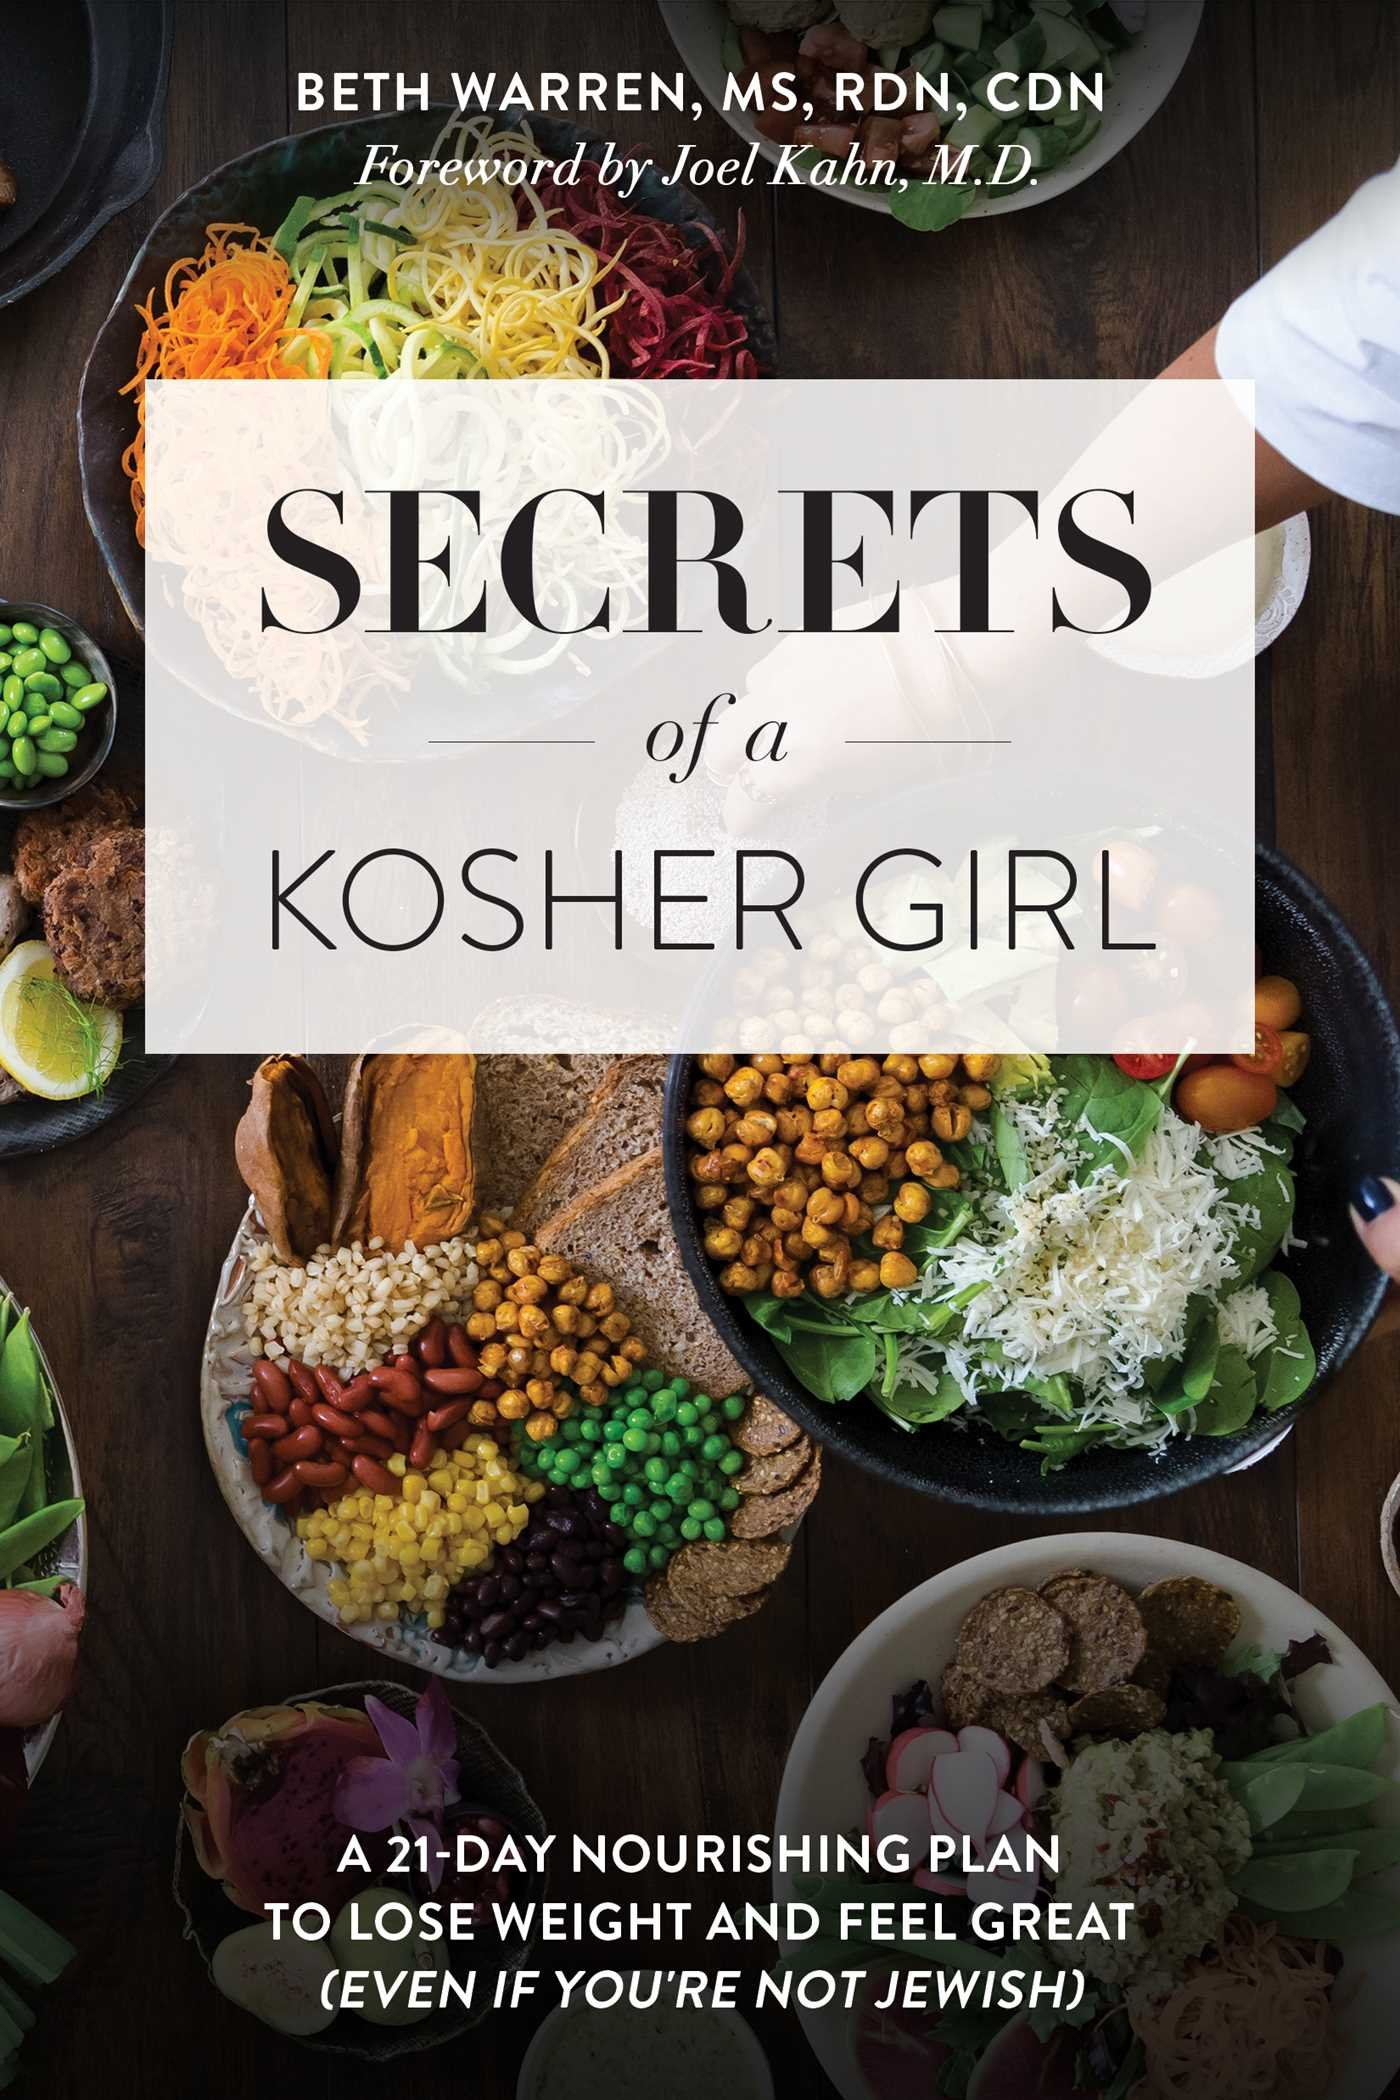 Tell me please, what is kosher and non-kosher food